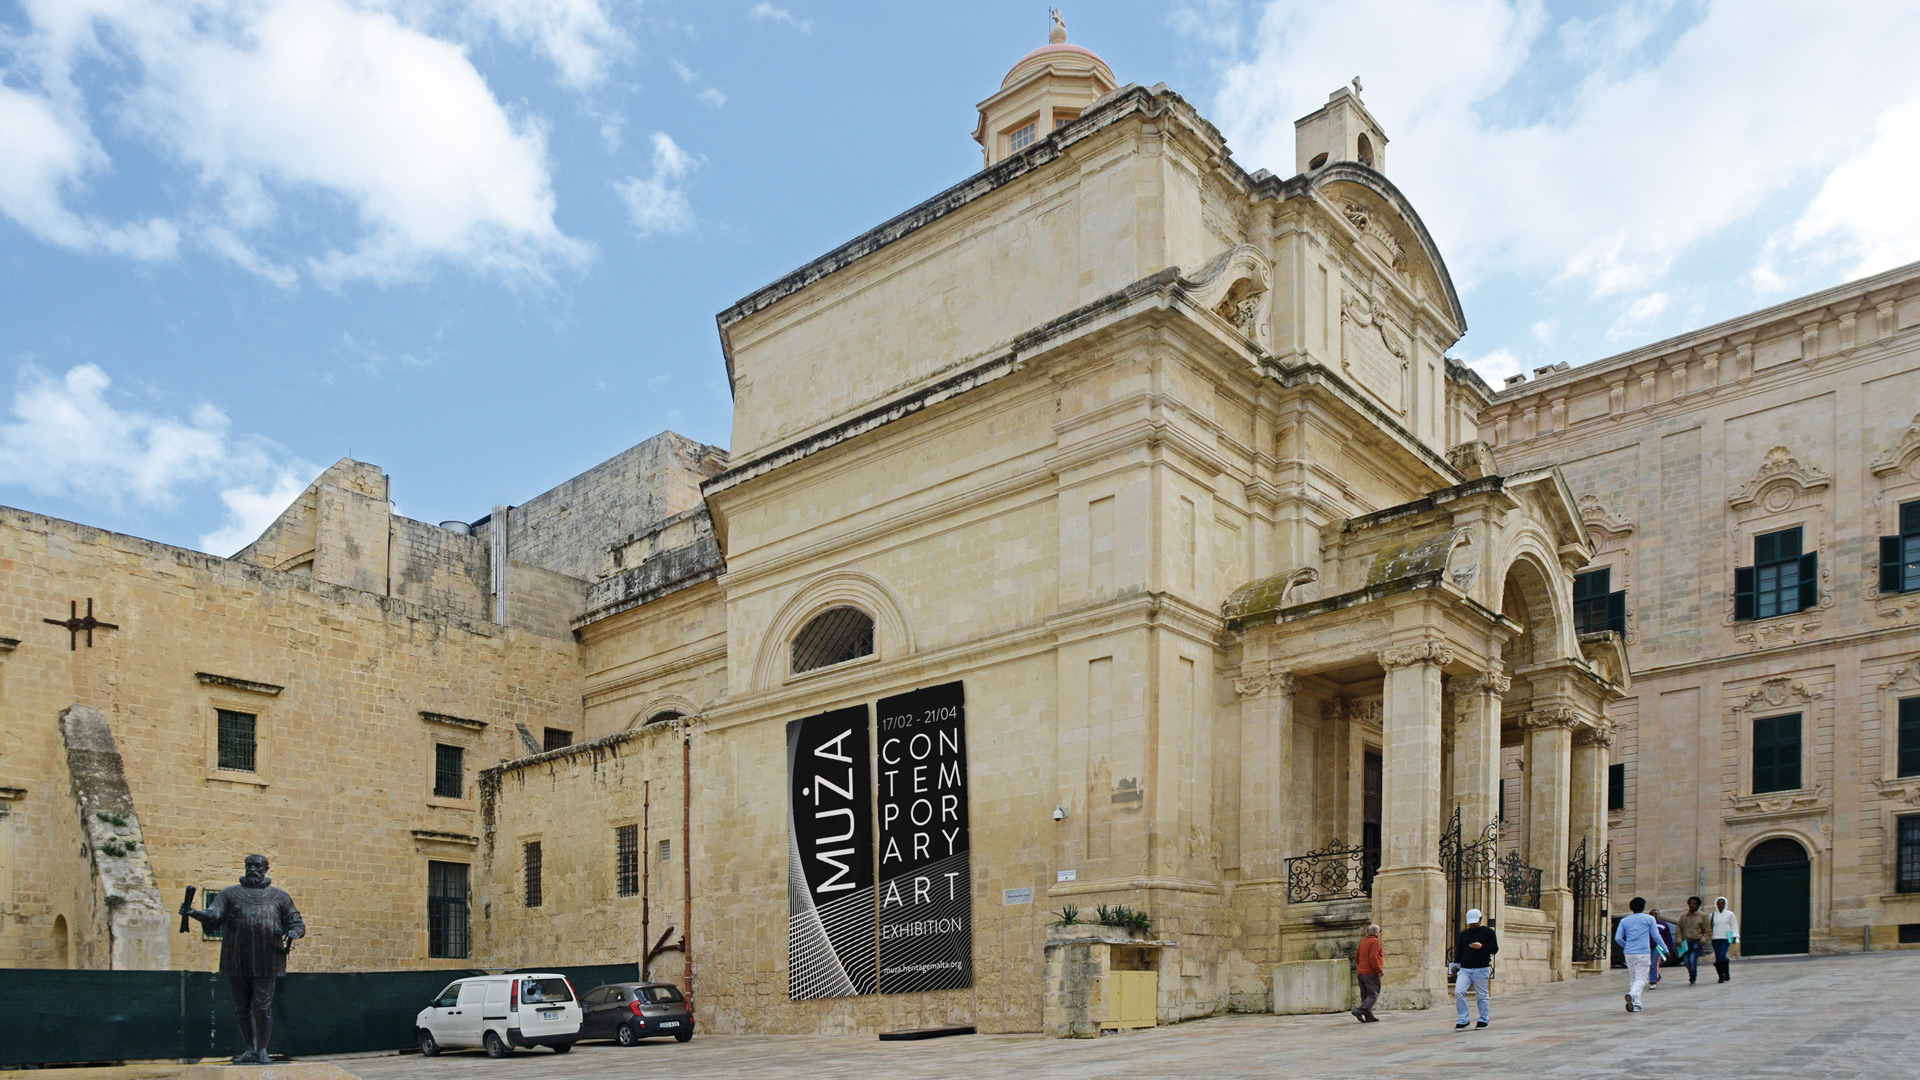 MUZA National Museum of Fine Arts of Malta